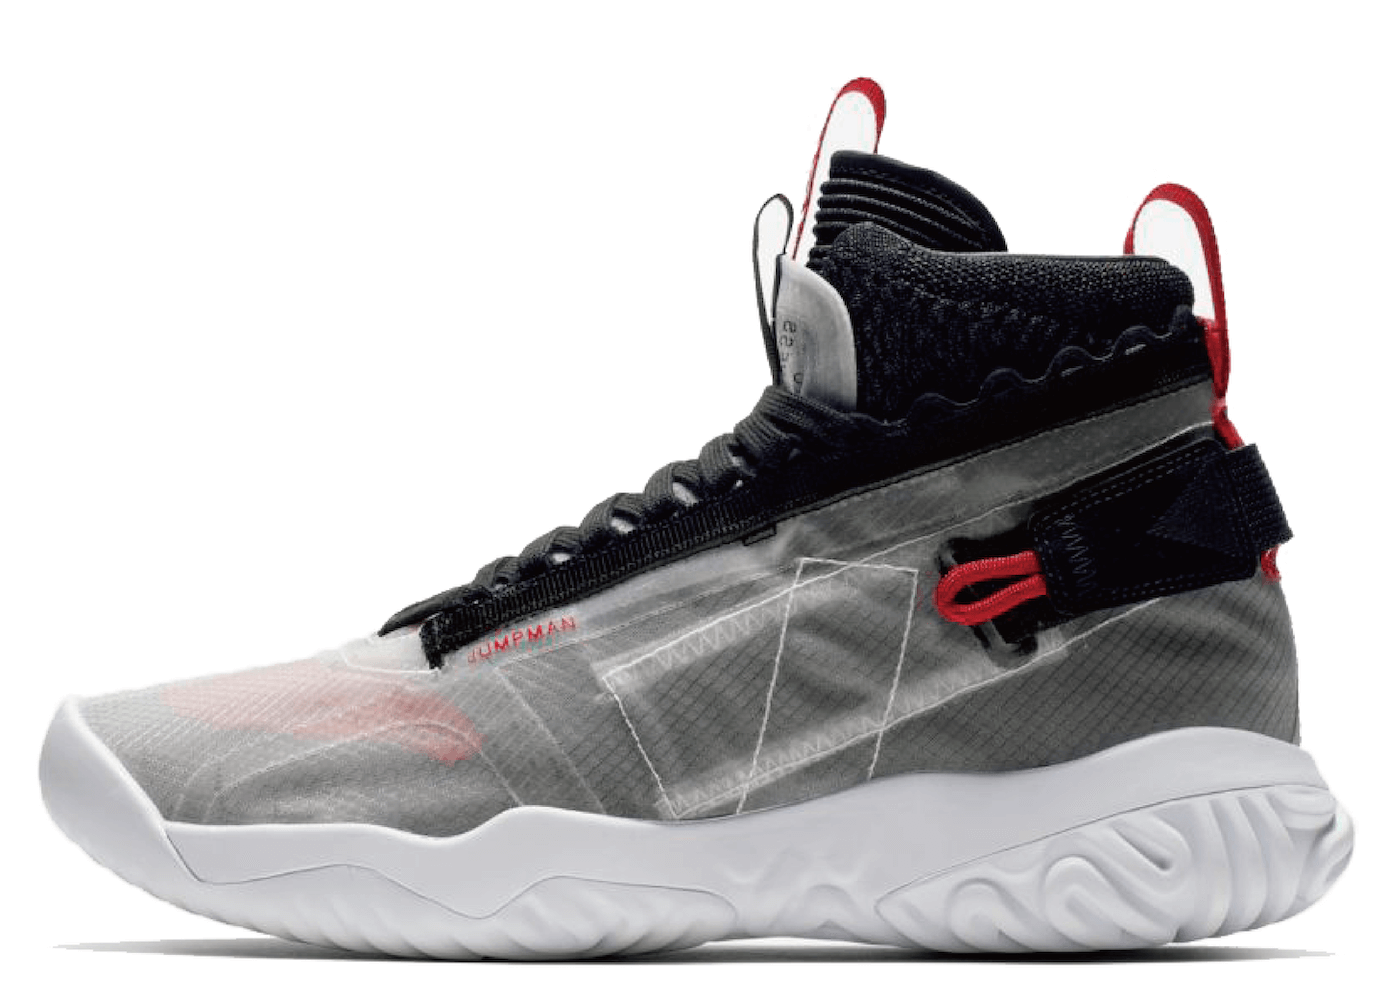 Nike Air Jordan Apex Utility Flight Utilityの写真